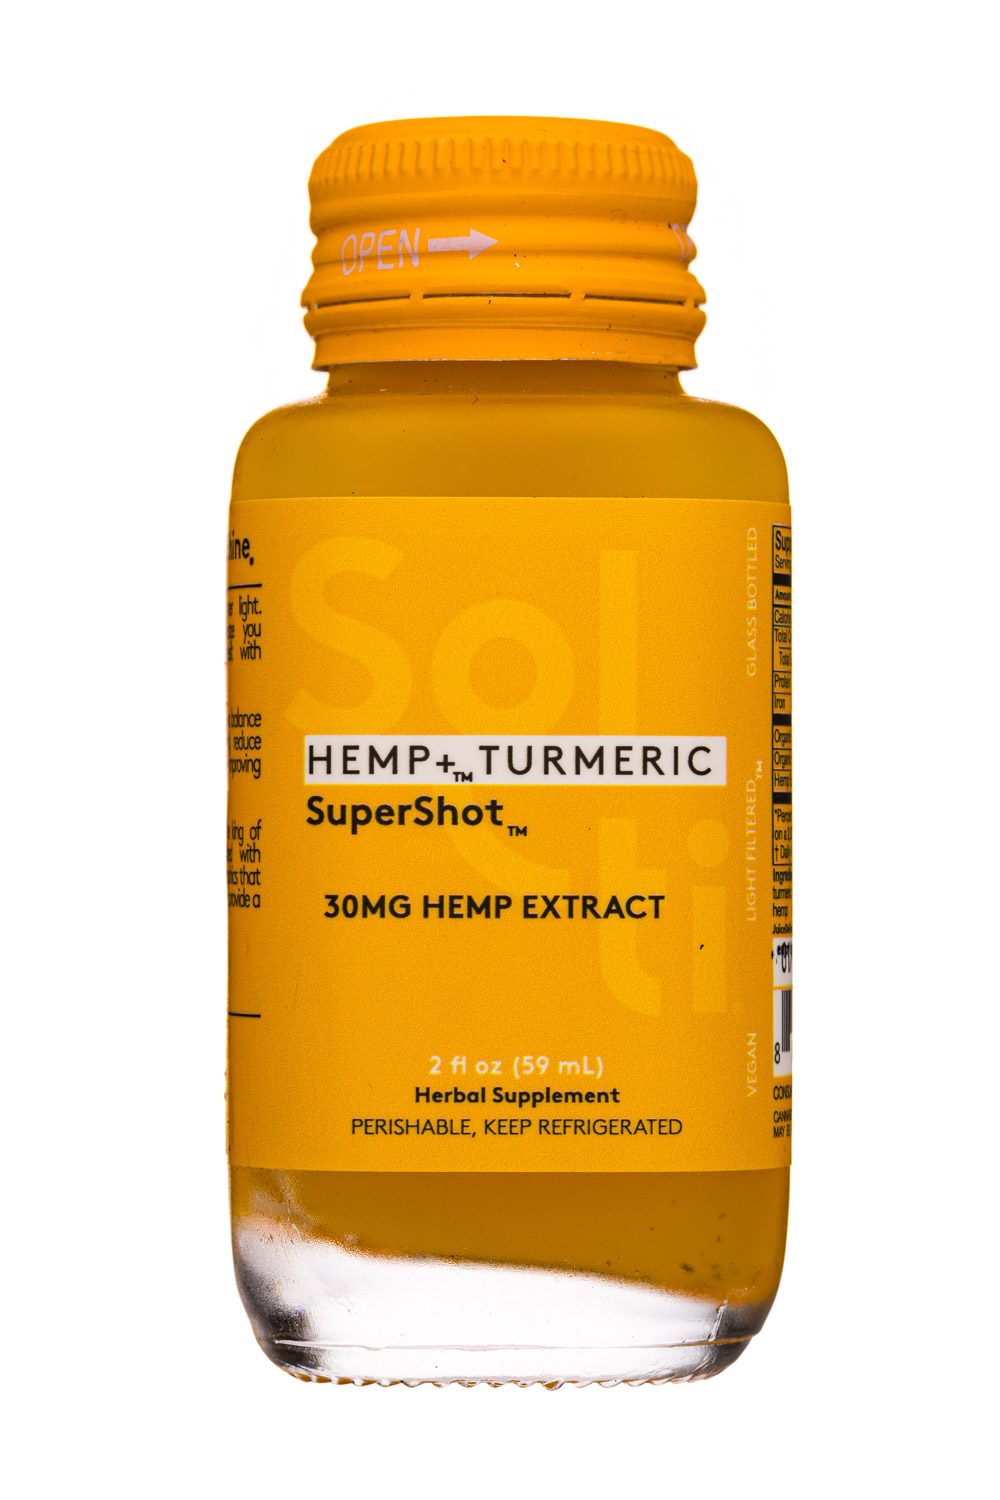 HEMP + Turmeric - Supershot